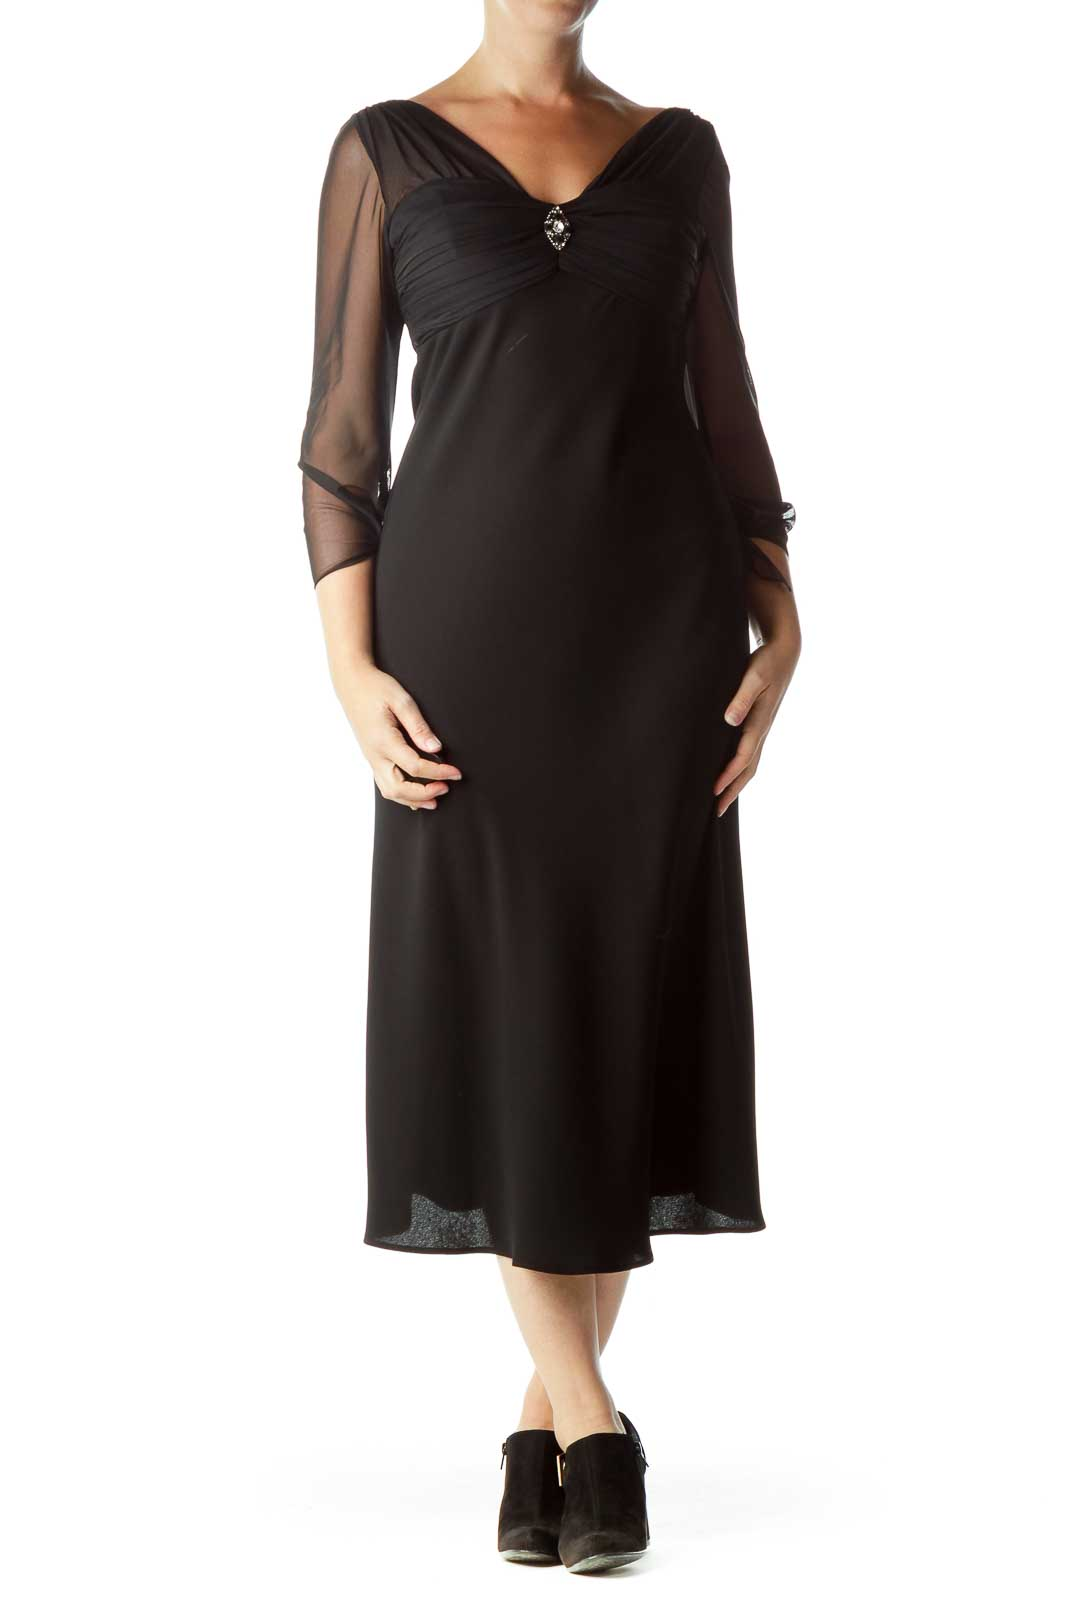 Black Sheer Evening Dress with Brooch